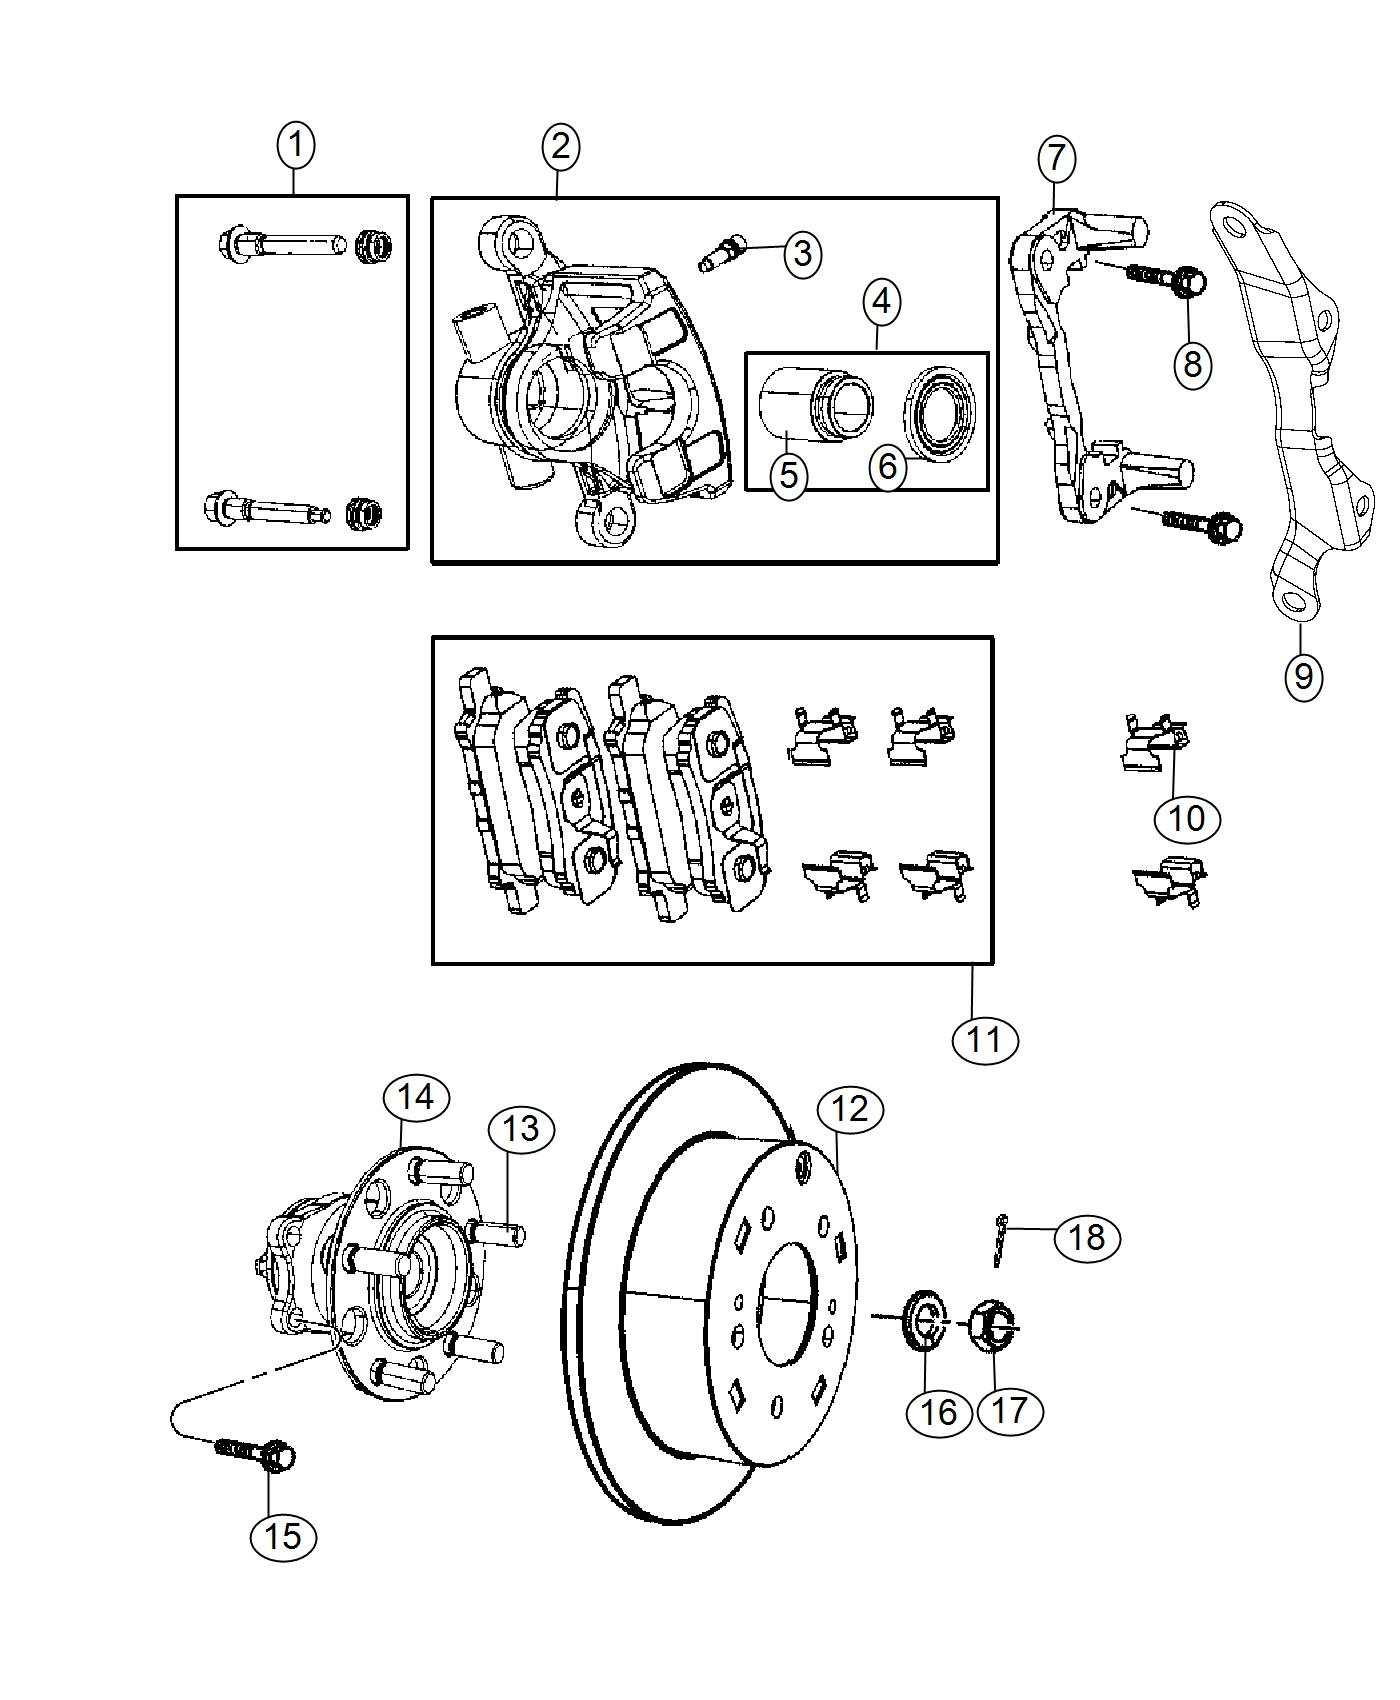 2016 Jeep Patriot Bracket. Brake caliper. Left. [anti-lock